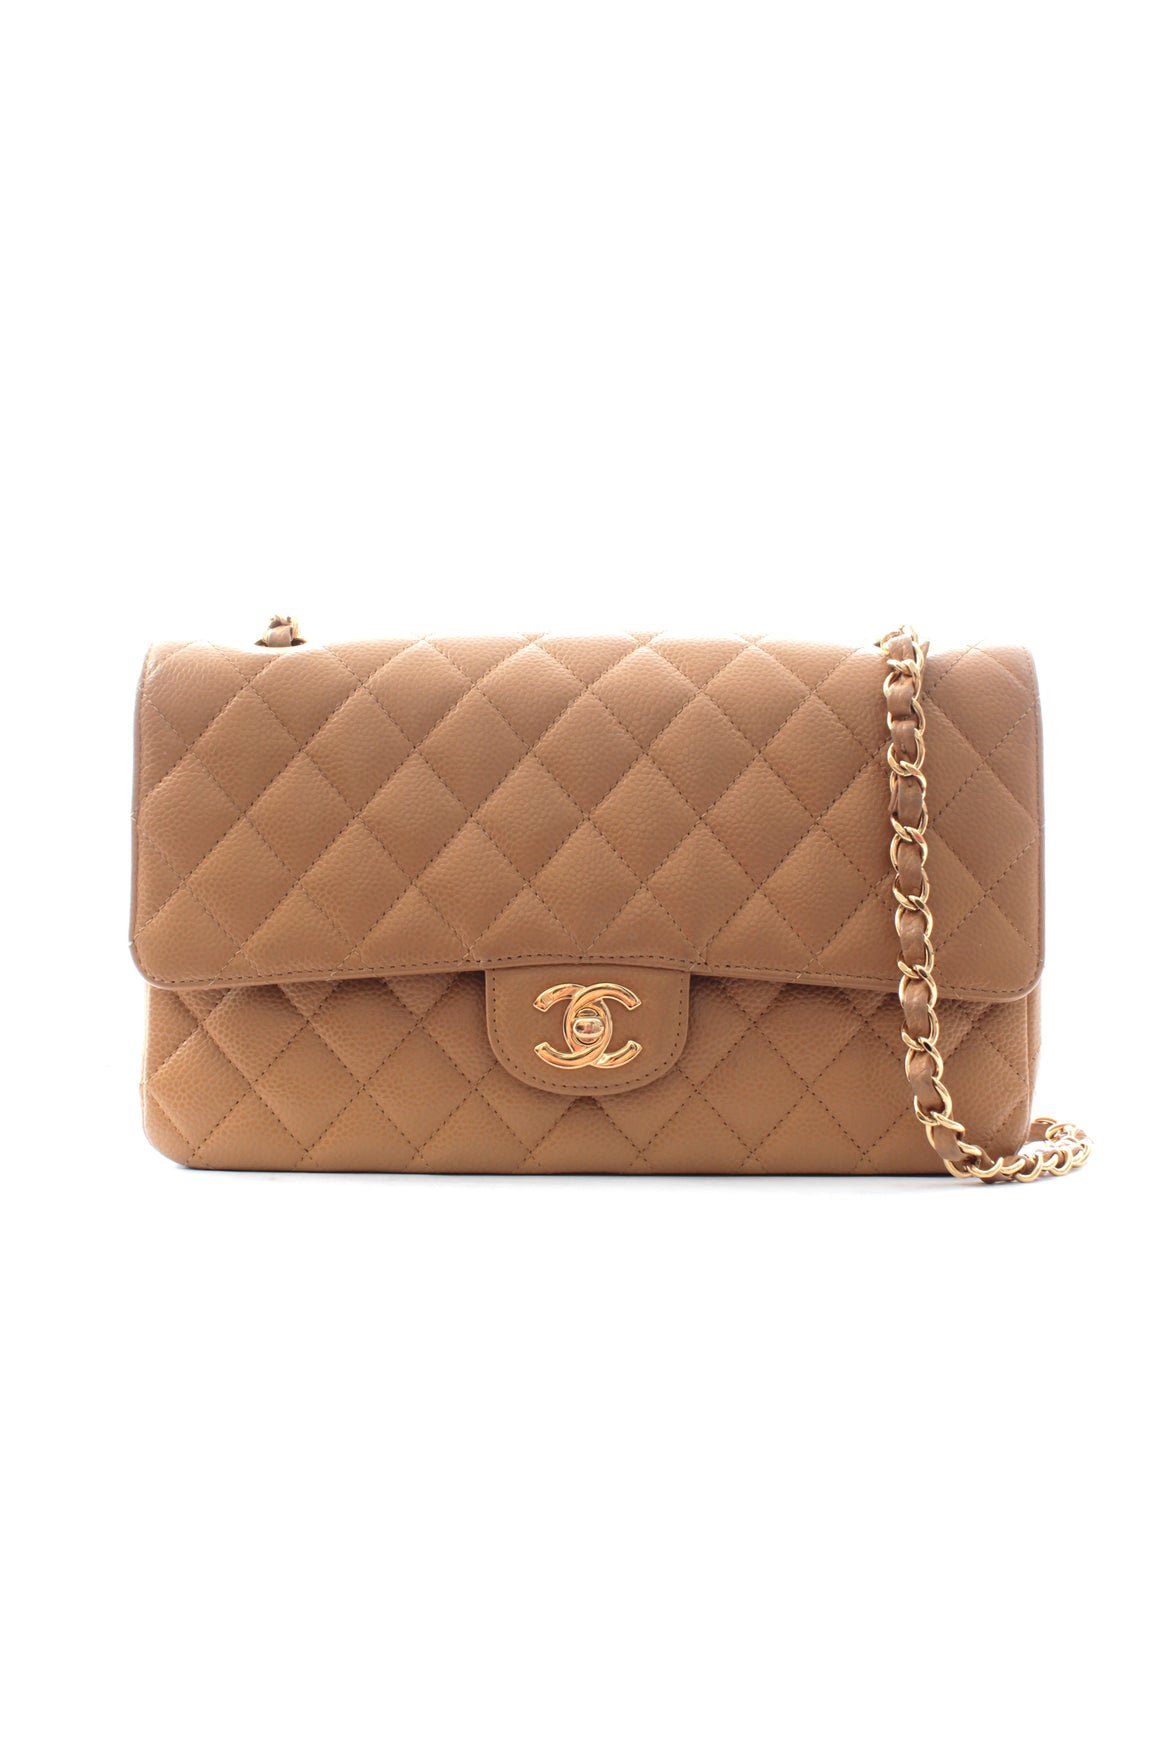 Chanel Timeless Caviar Leather Flap Bag